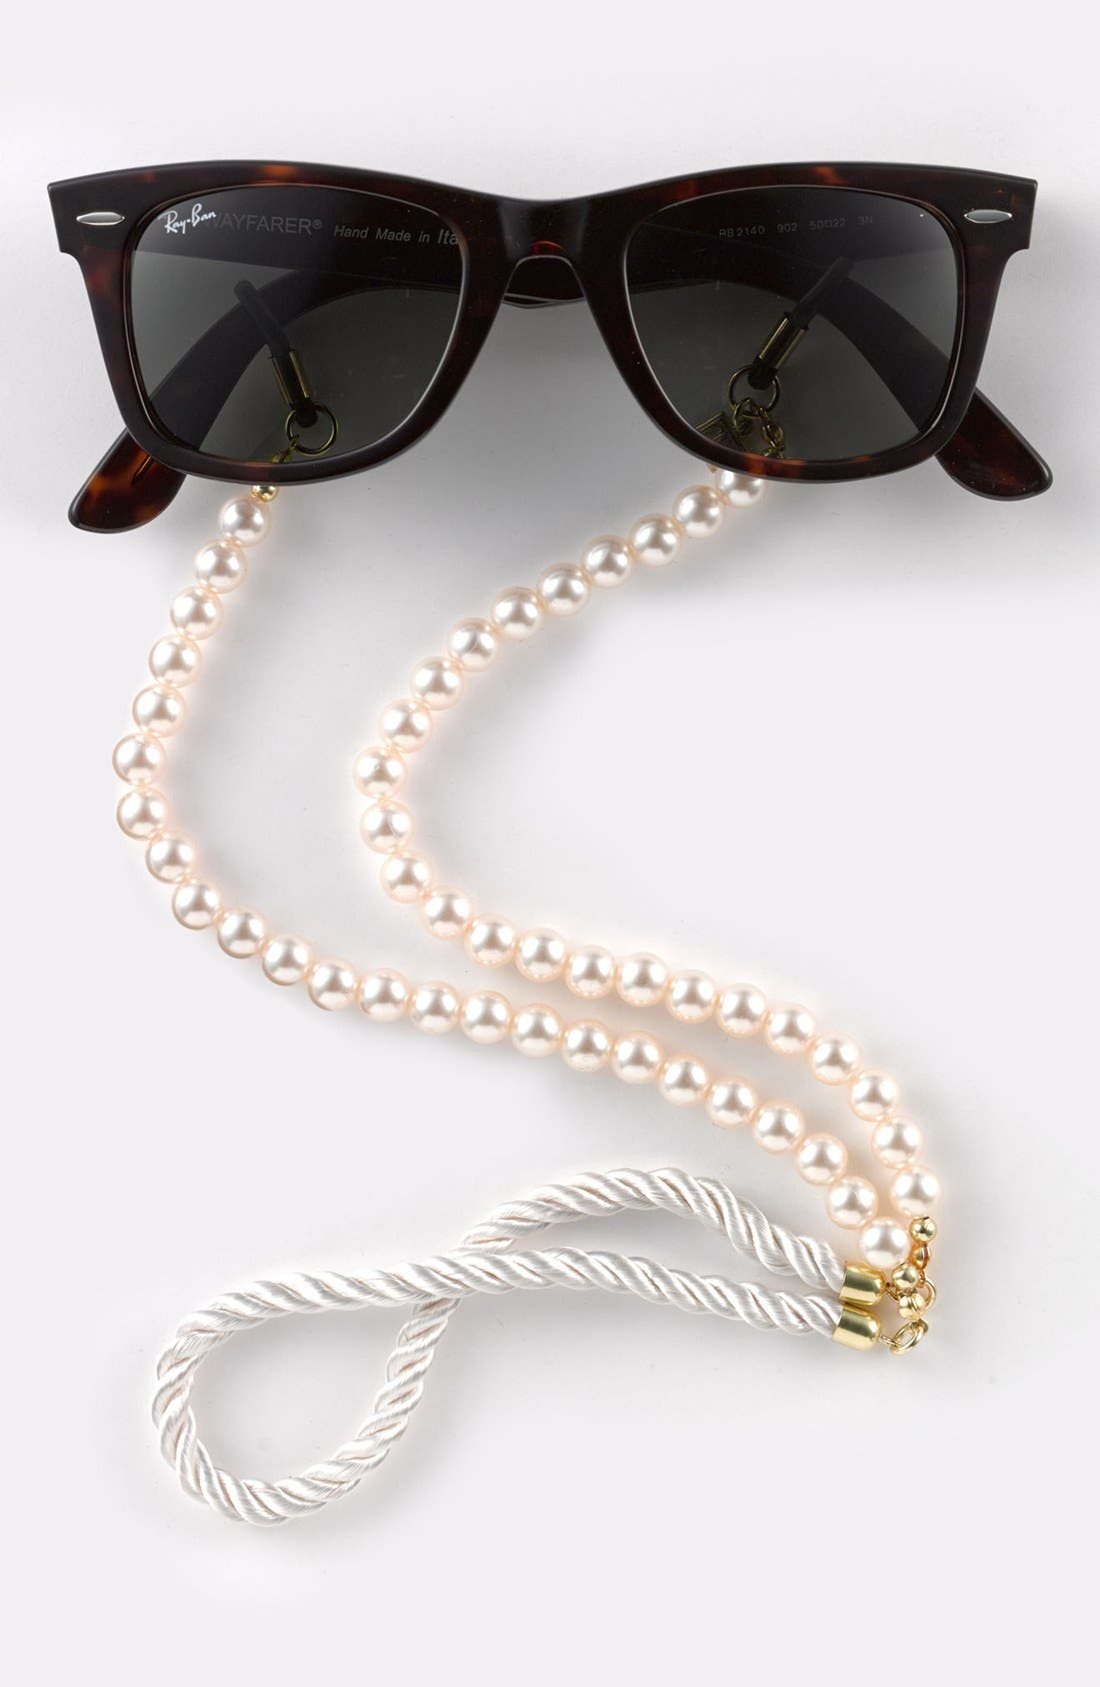 Alternate Image 1 Selected - Corinne McCormack 'Pearls' Eyewear Chain (Nordstrom Exclusive)